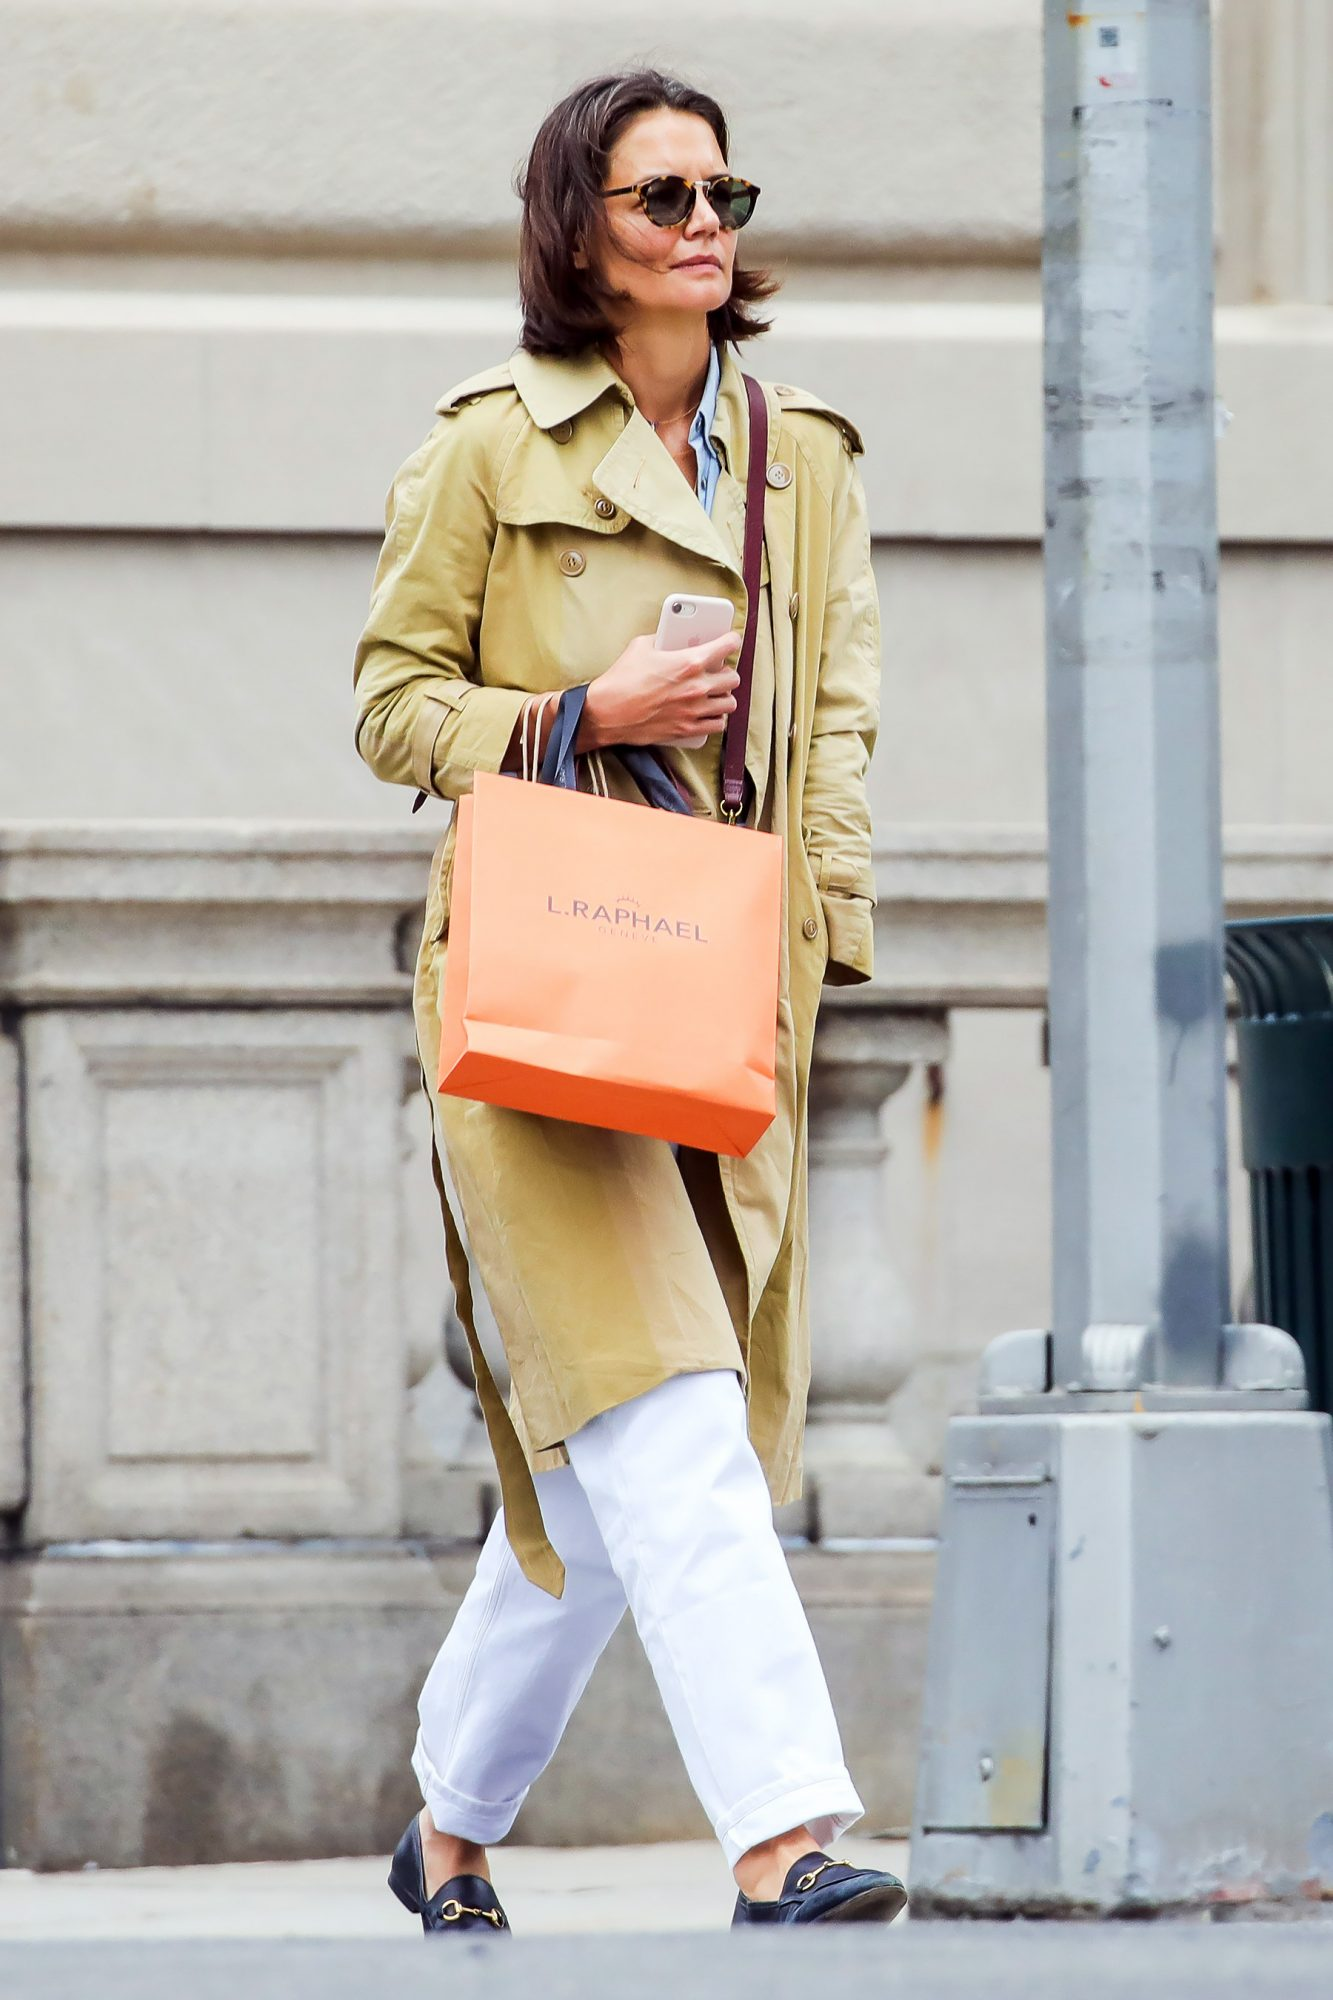 EXCLUSIVE: Katie Holmes Spotted Walking On Madison Avenue In NYC